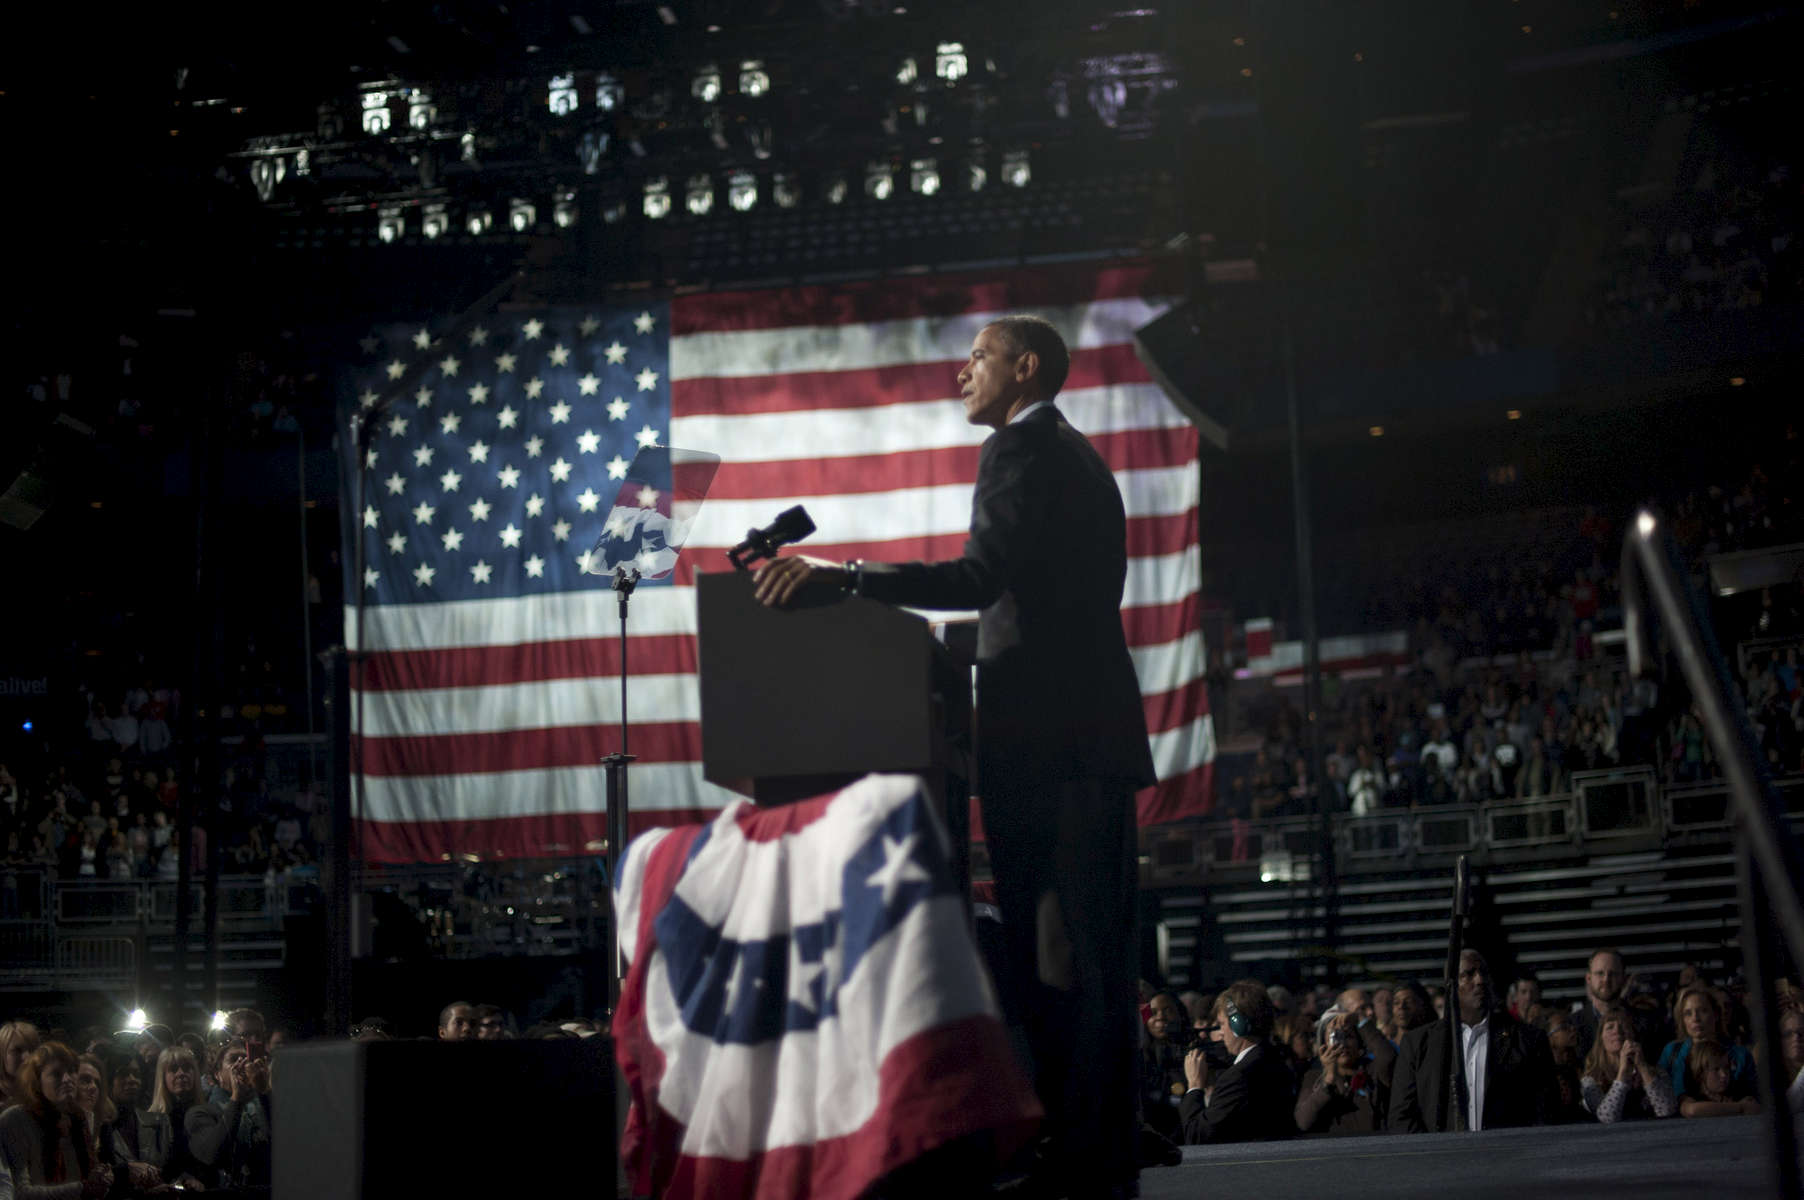 November 5, 2012  - President Barack Obama speaks at a rally in Columbus, OH the day before the 2012 election.  (Scout Tufankjian for Obama for America/Polaris)